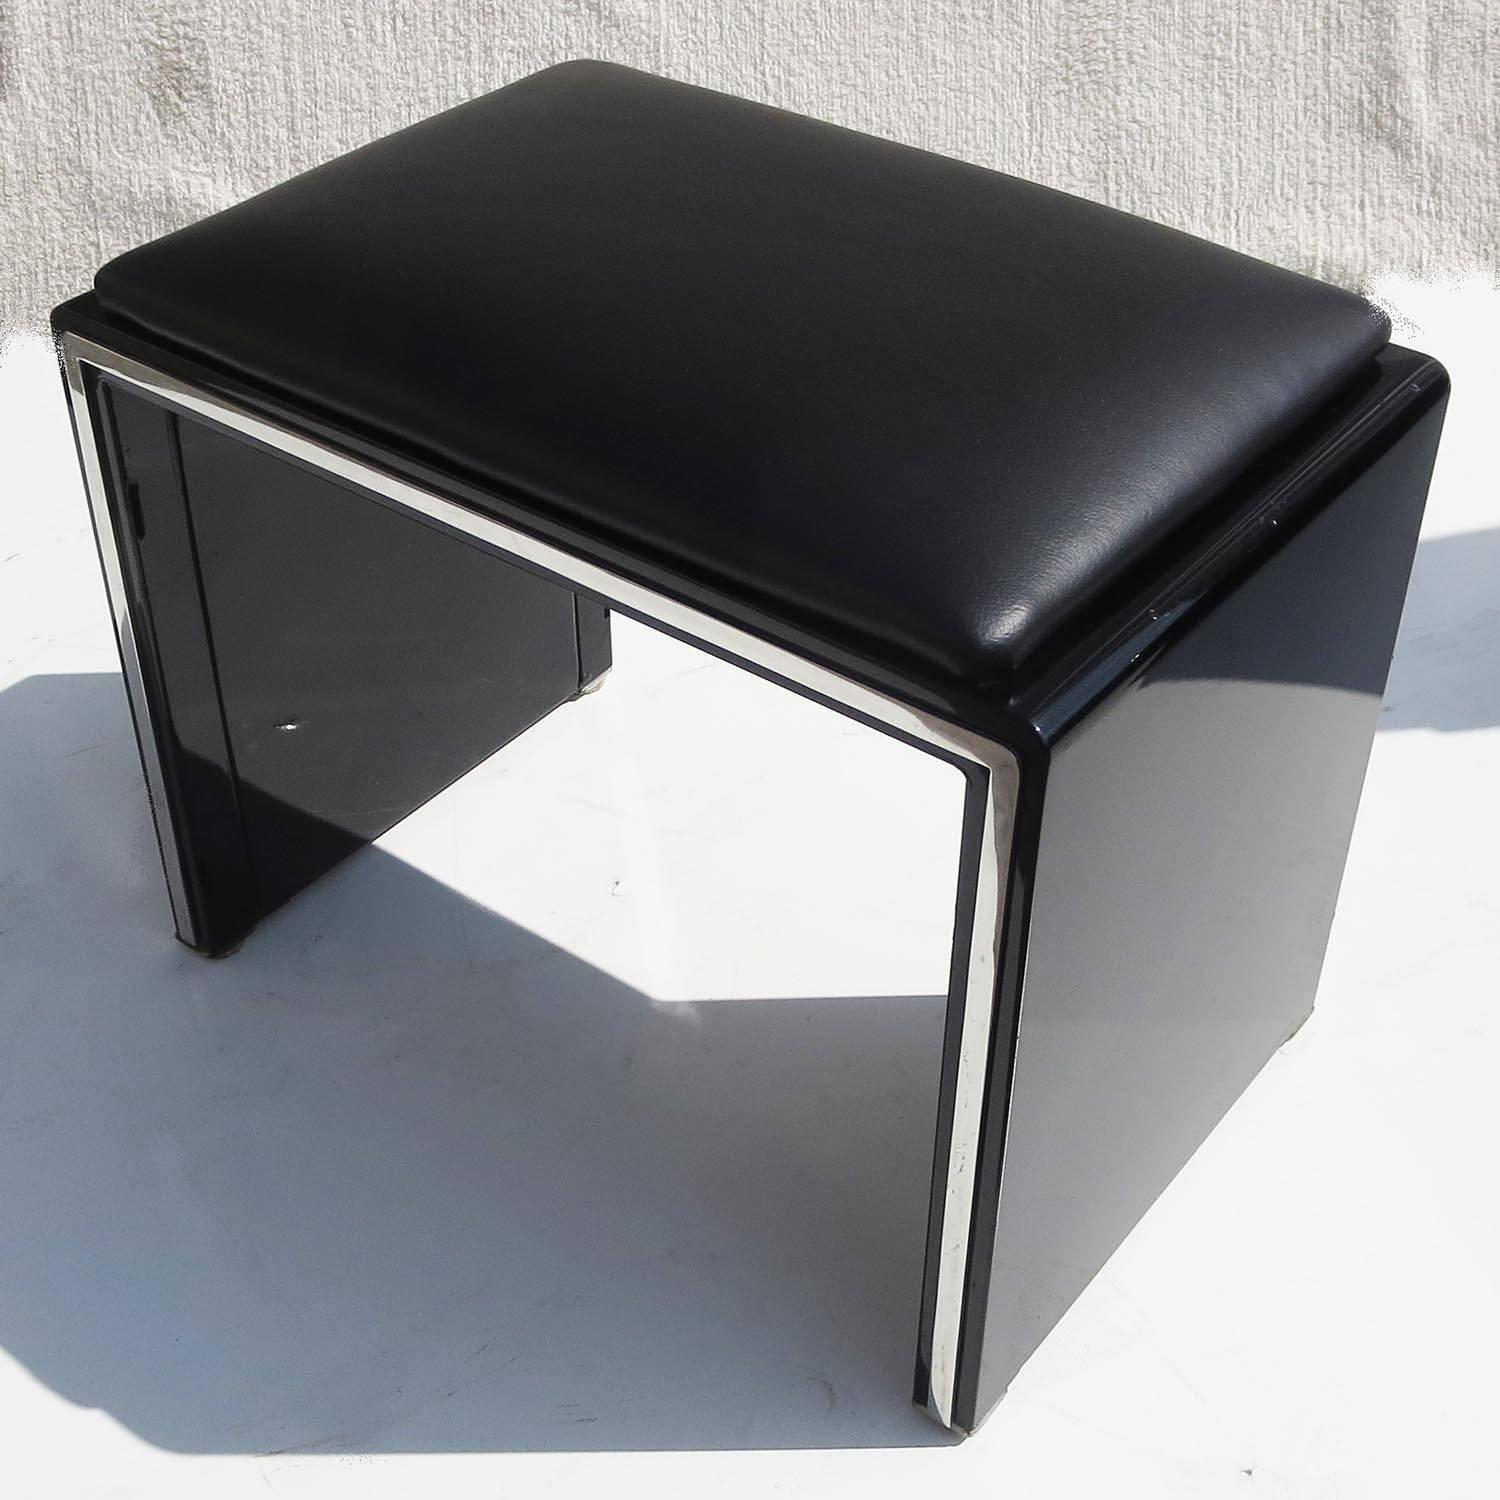 Norman bel geddes art deco vanity dressing table seat and for Vanity table and mirror for sale